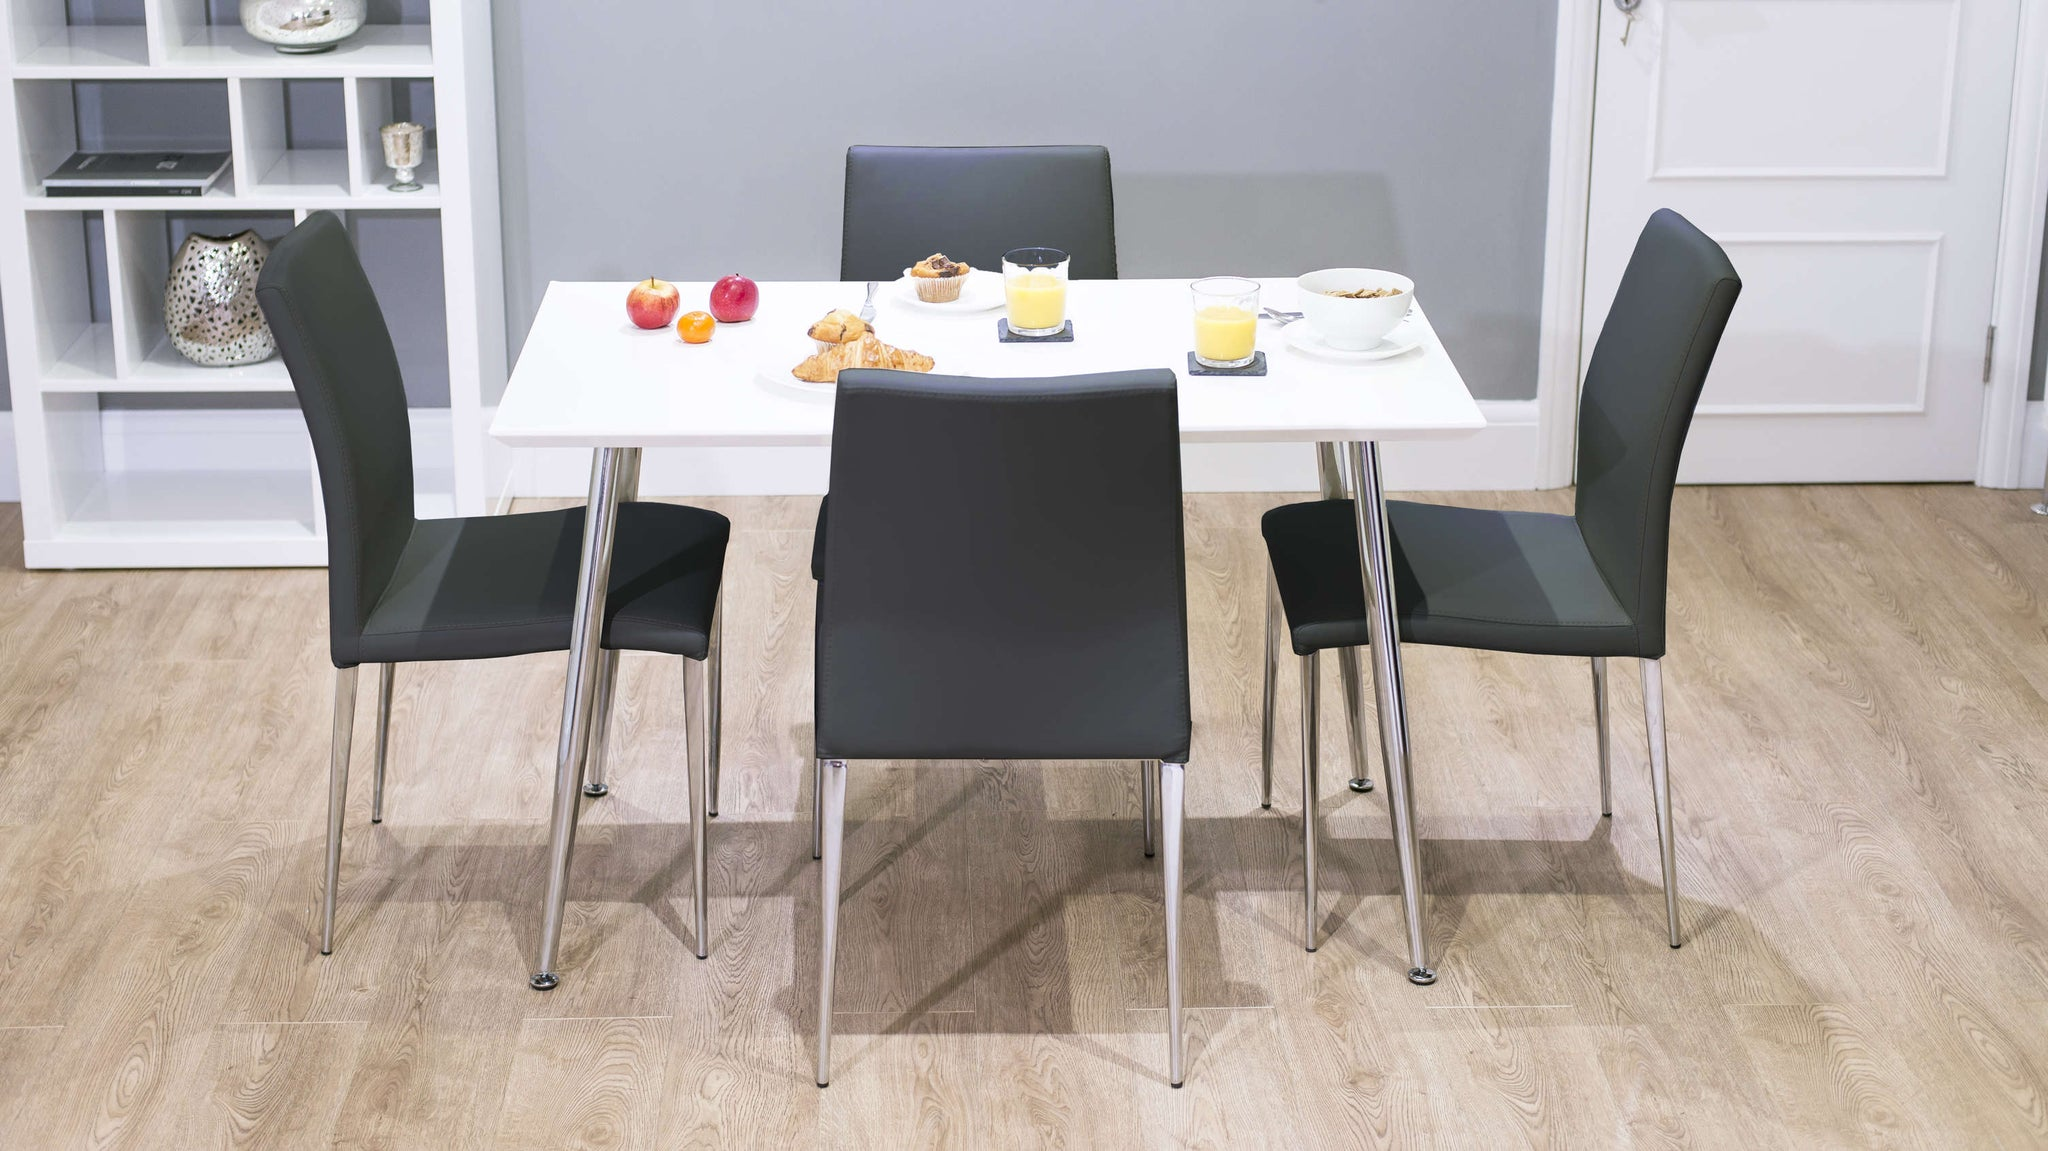 4 Seater White Dining Table and Black Dining Chairs